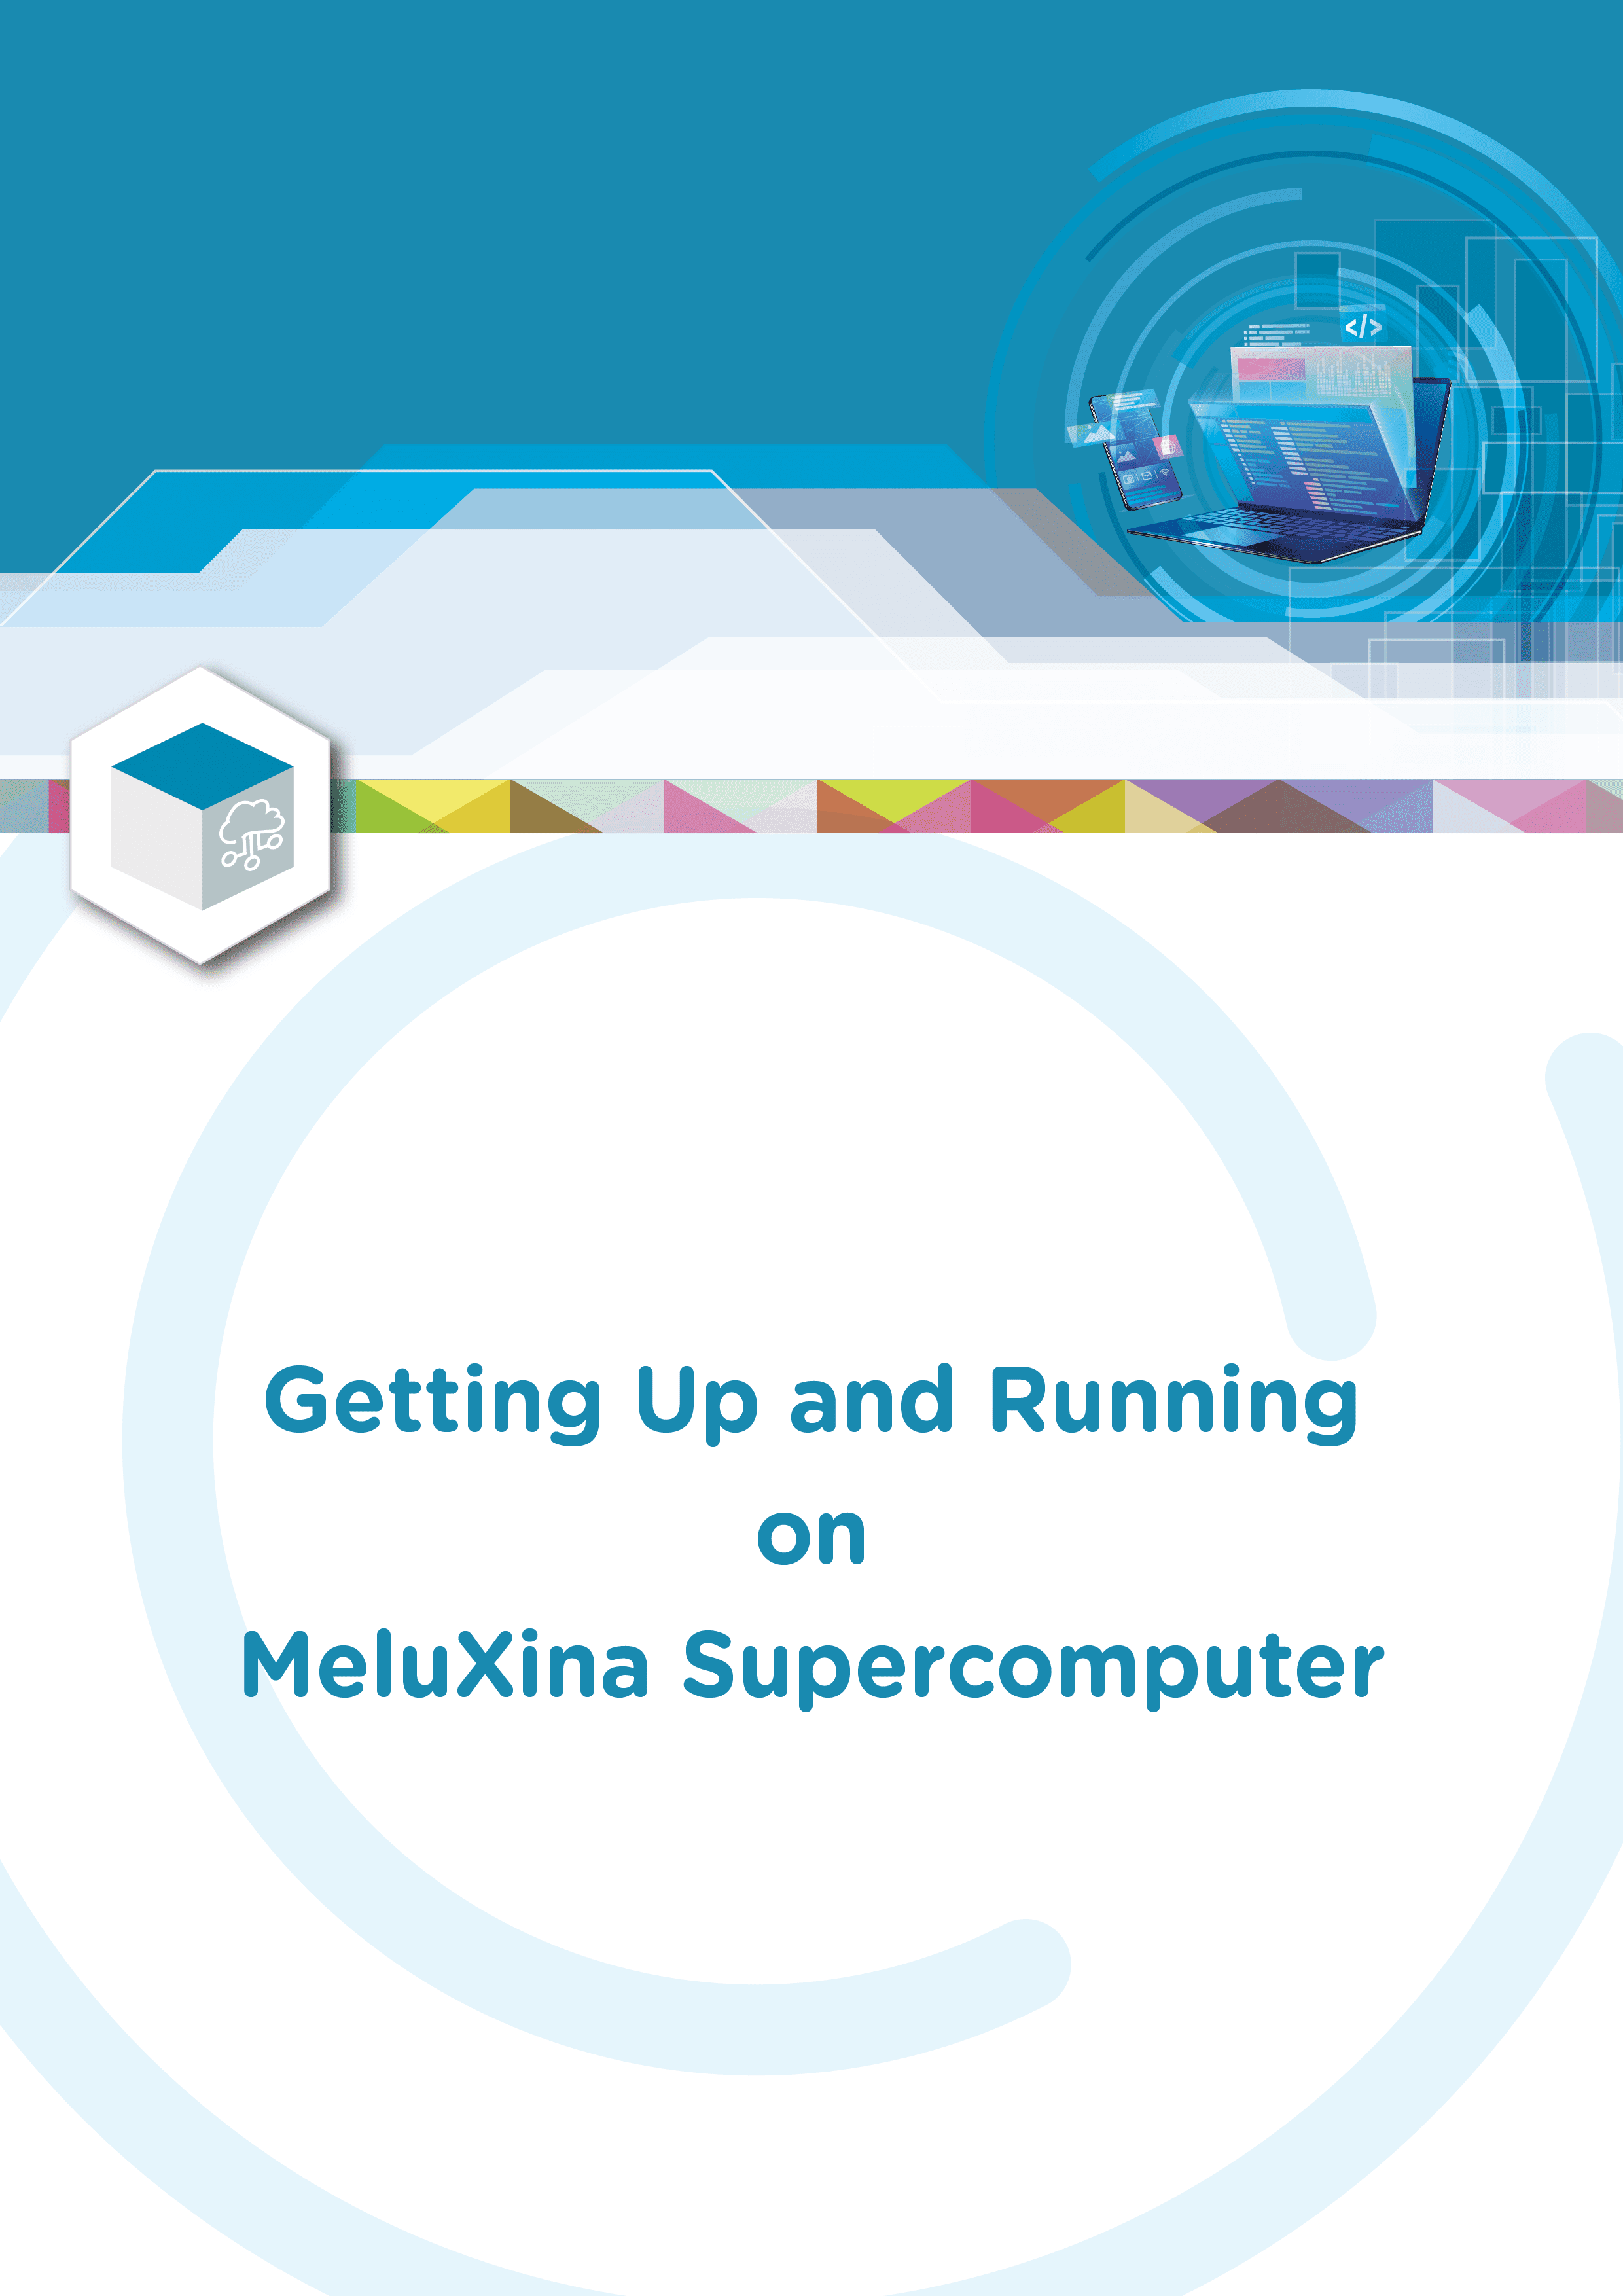 Getting Up and Running on MeluXina Supercomputer